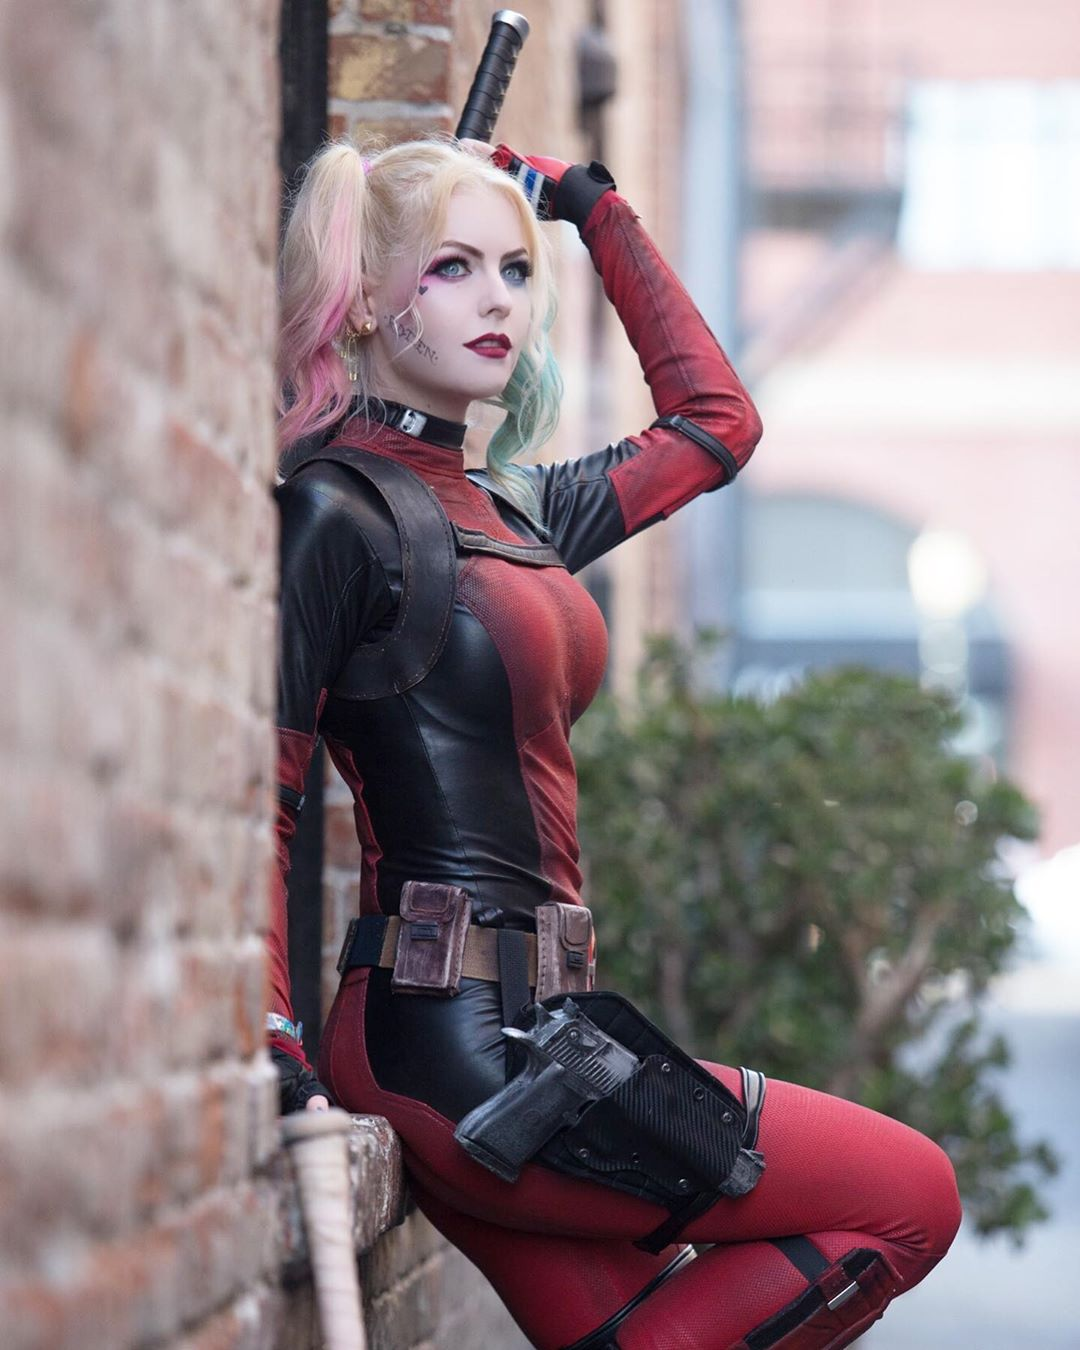 Lady Deadpool - Harley Quinn Mashup 2 por Maid of Might